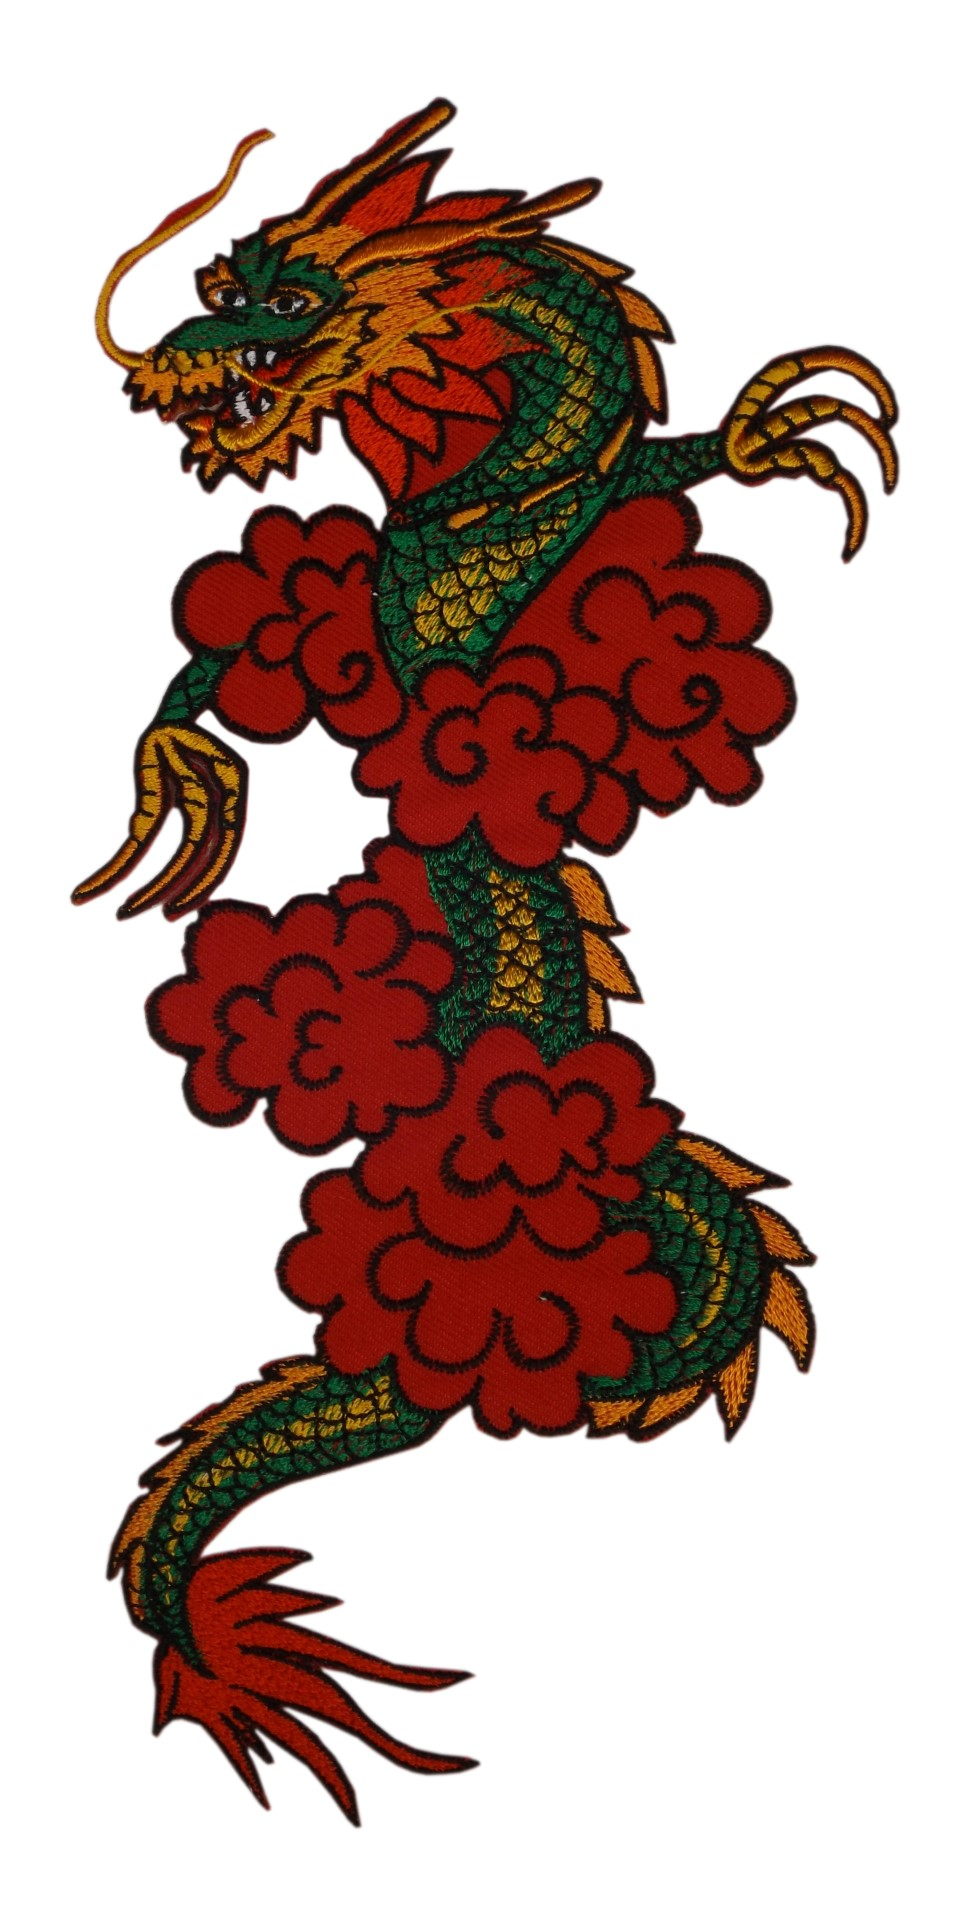 big_patch_iron_kingsize_dragon_thailand_martial_arts_tattoo_japan_china_patches_2.jpg